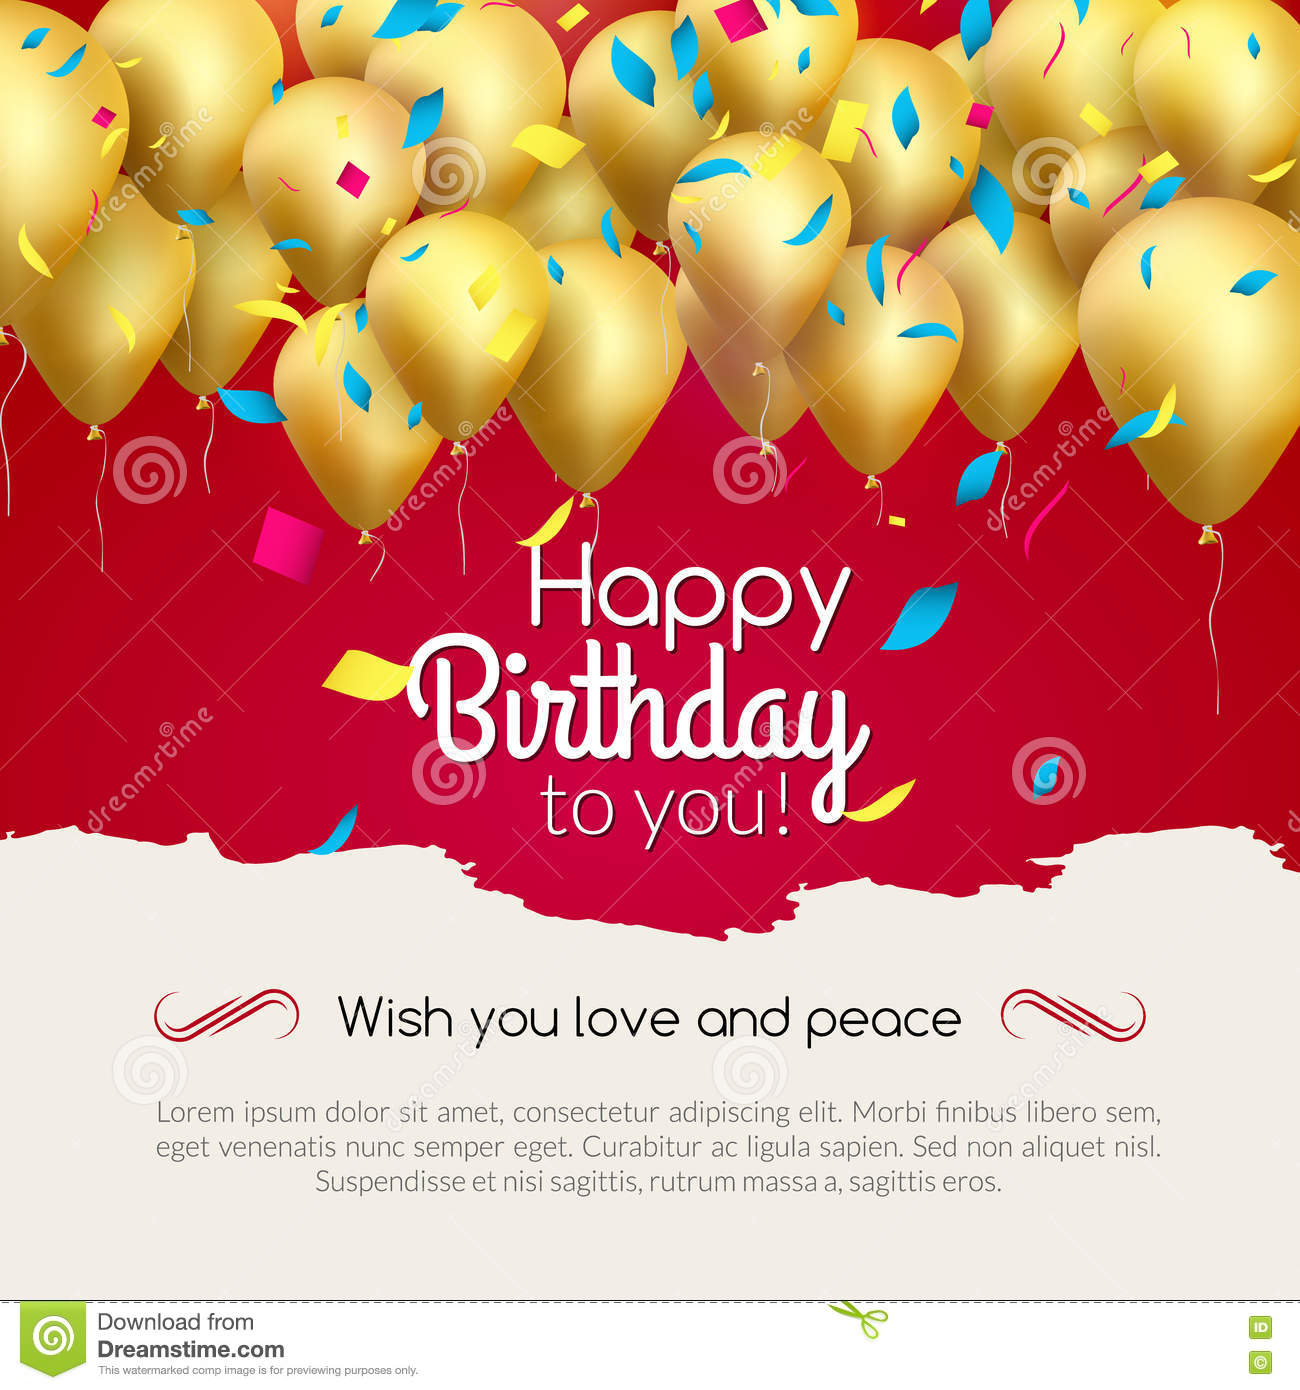 Vector Happy Birthday Card With Golden Balloons And Confetti, Party ...